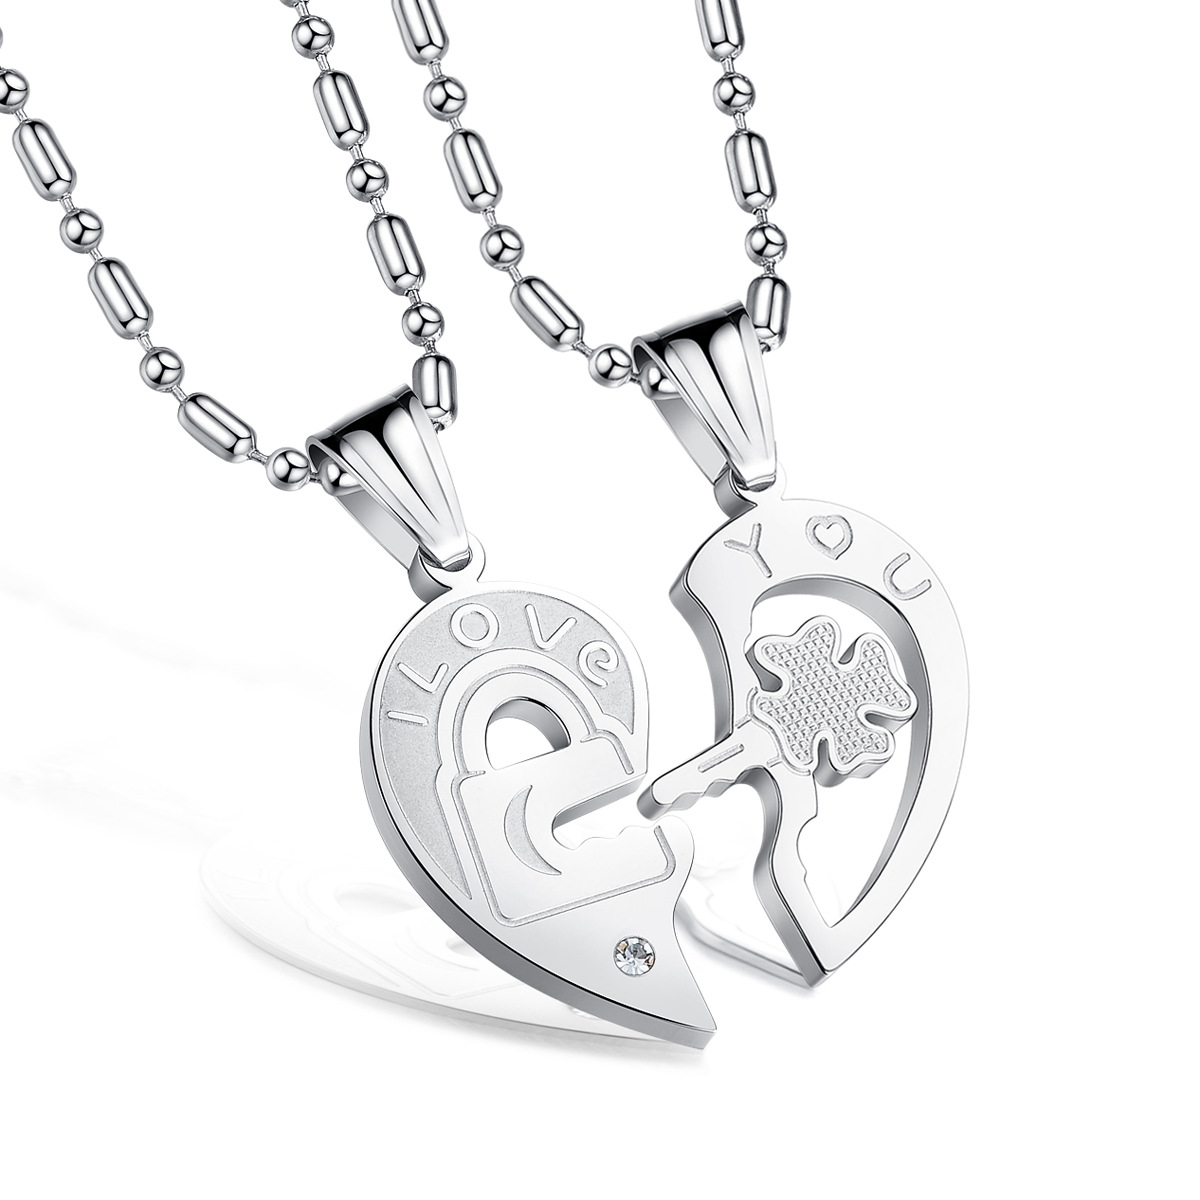 Compare Prices on Matching Heart Necklace for Couples- Online ...